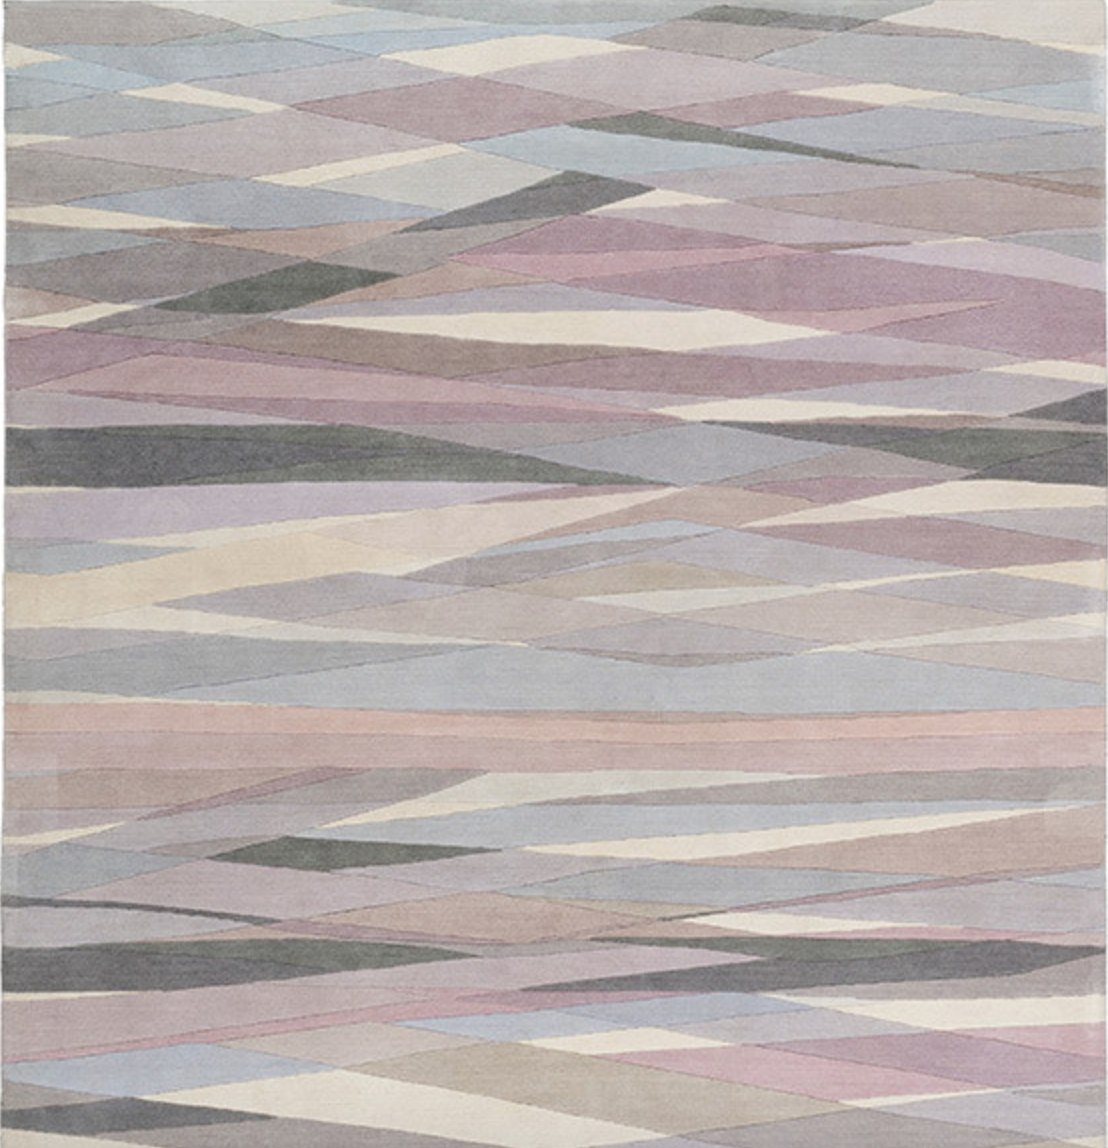 The New Neutrals: Paul Smith's 'Carnival Pale' version of his immensely popular 'Carnival' rug for the The Rug Company, now rendered in soft muted shades is definitely one for the wish list. From £1,522 for size (1.52 x 0.91m).